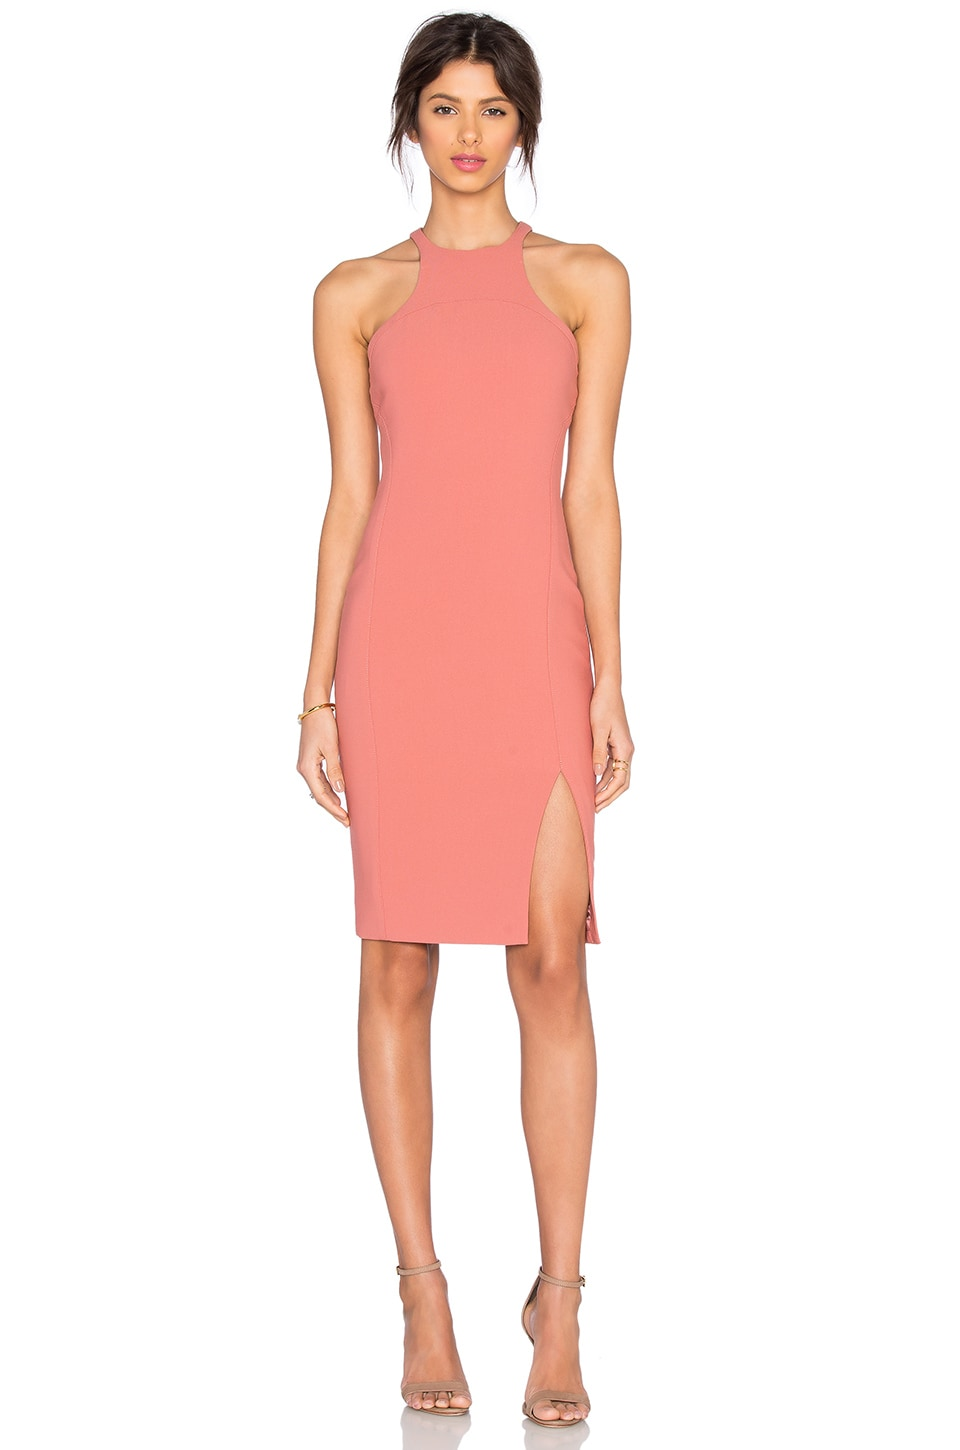 Elizabeth and James Hout Dress in Peach Nougat